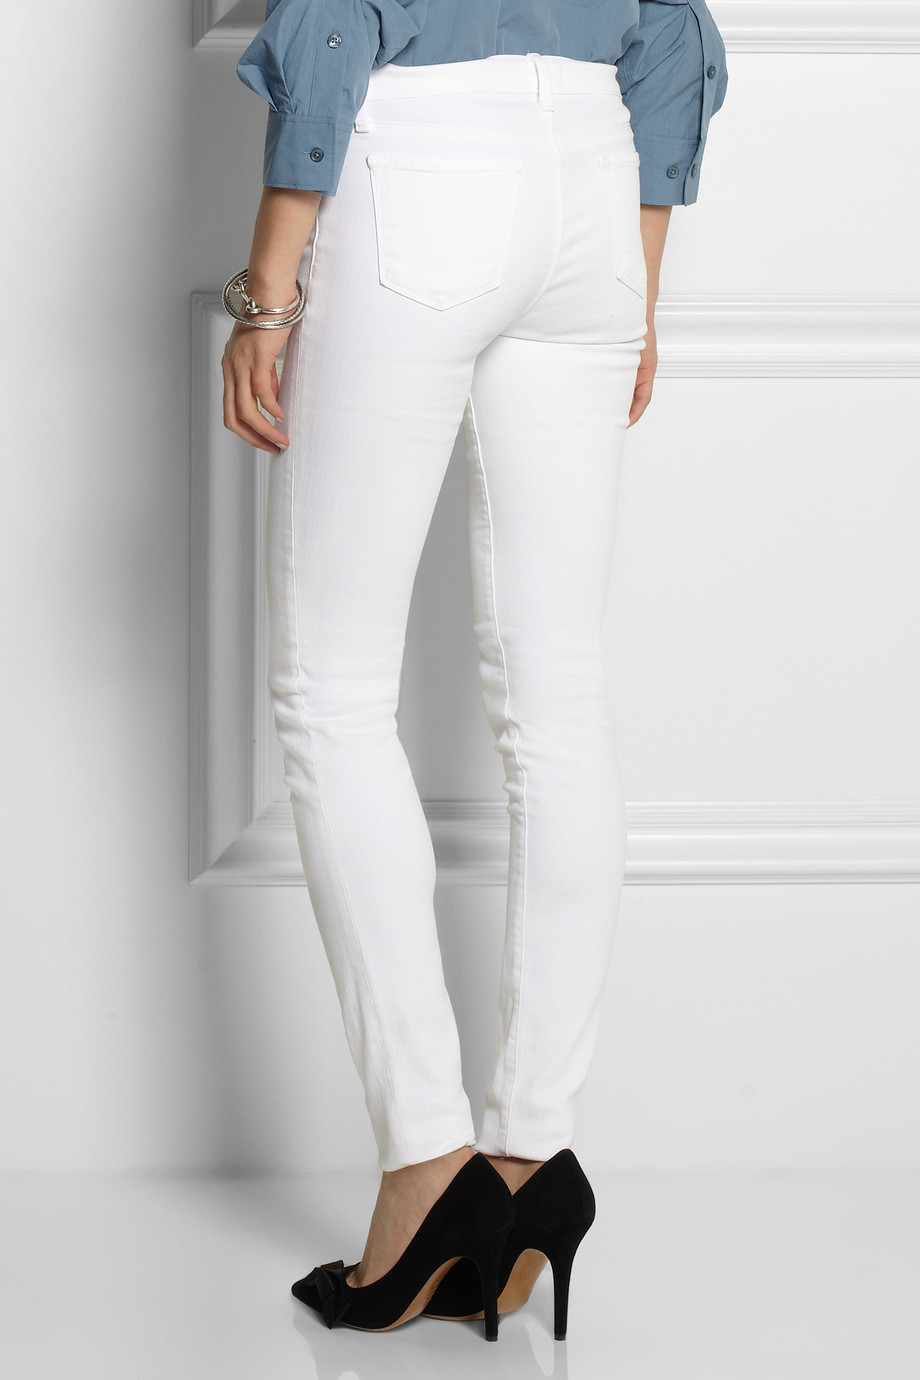 J brand Stacked Skinny Mid-Rise Jeans in White | Lyst